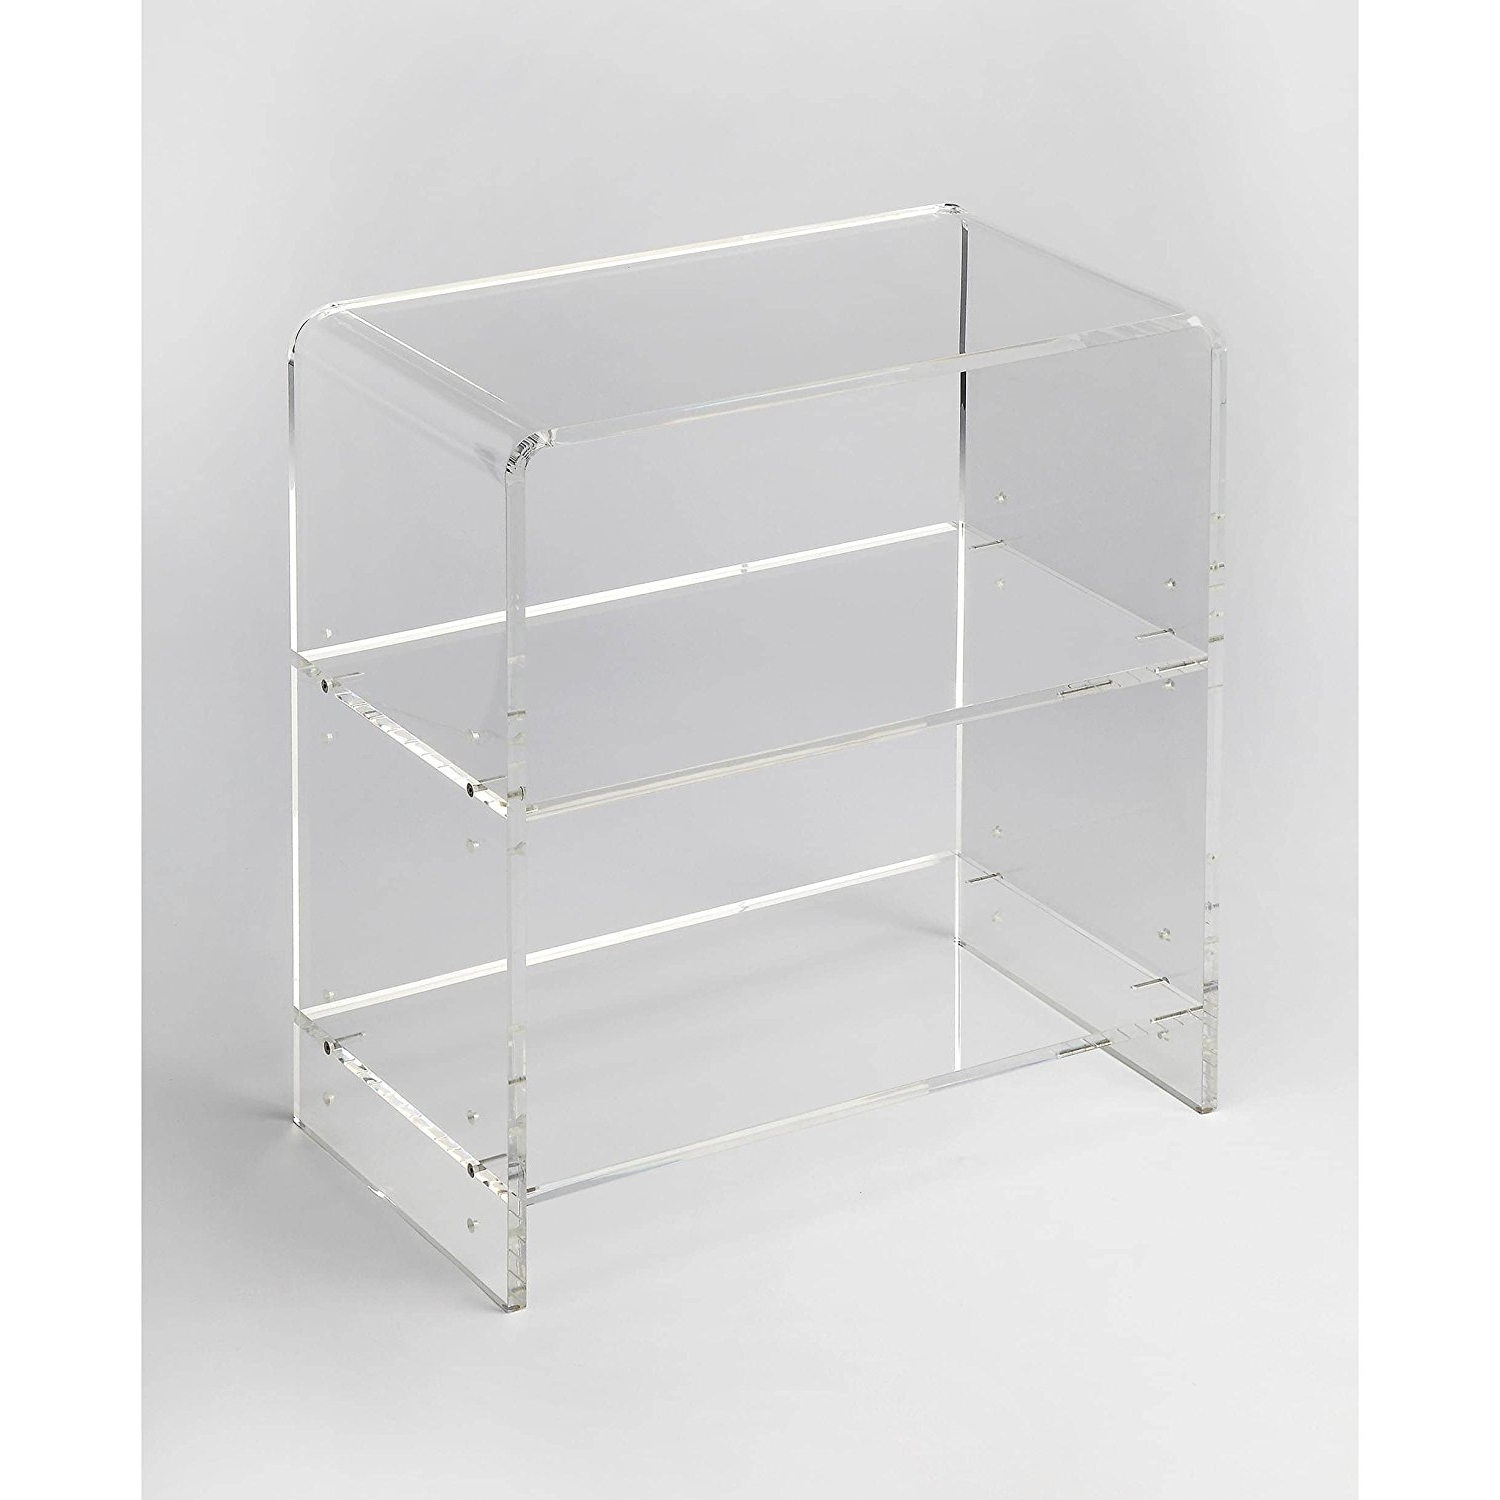 Amazon: Woybr 3611335 Bookcase Modern: Kitchen & Dining Inside Newest Acrylic Bookcases (View 4 of 15)